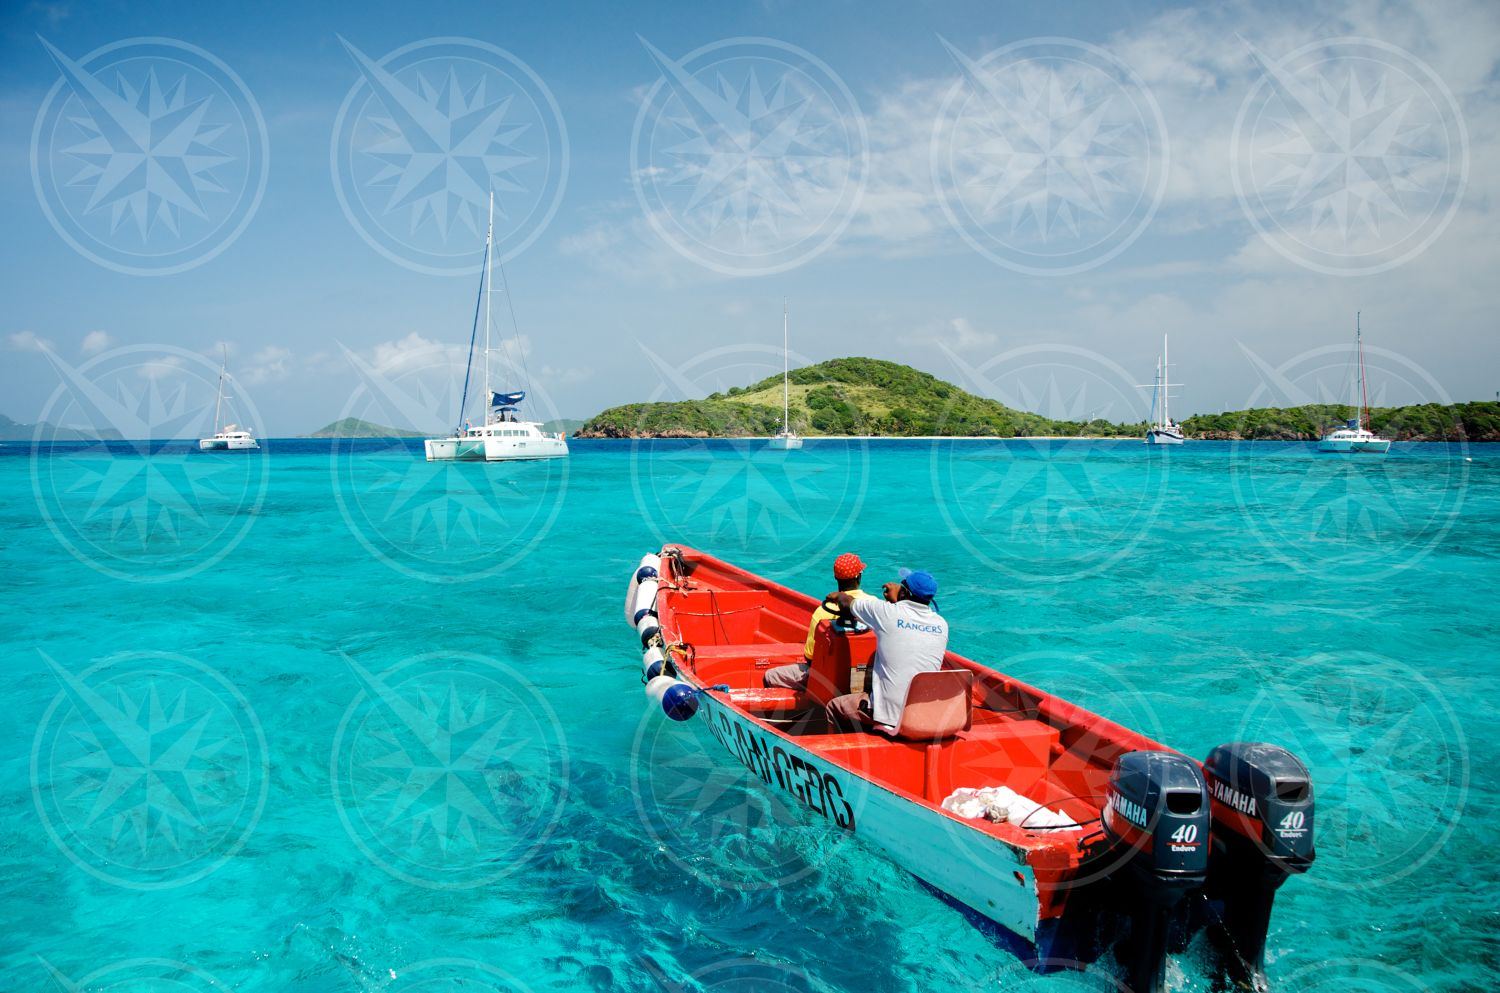 Boats in the Tobago Cays